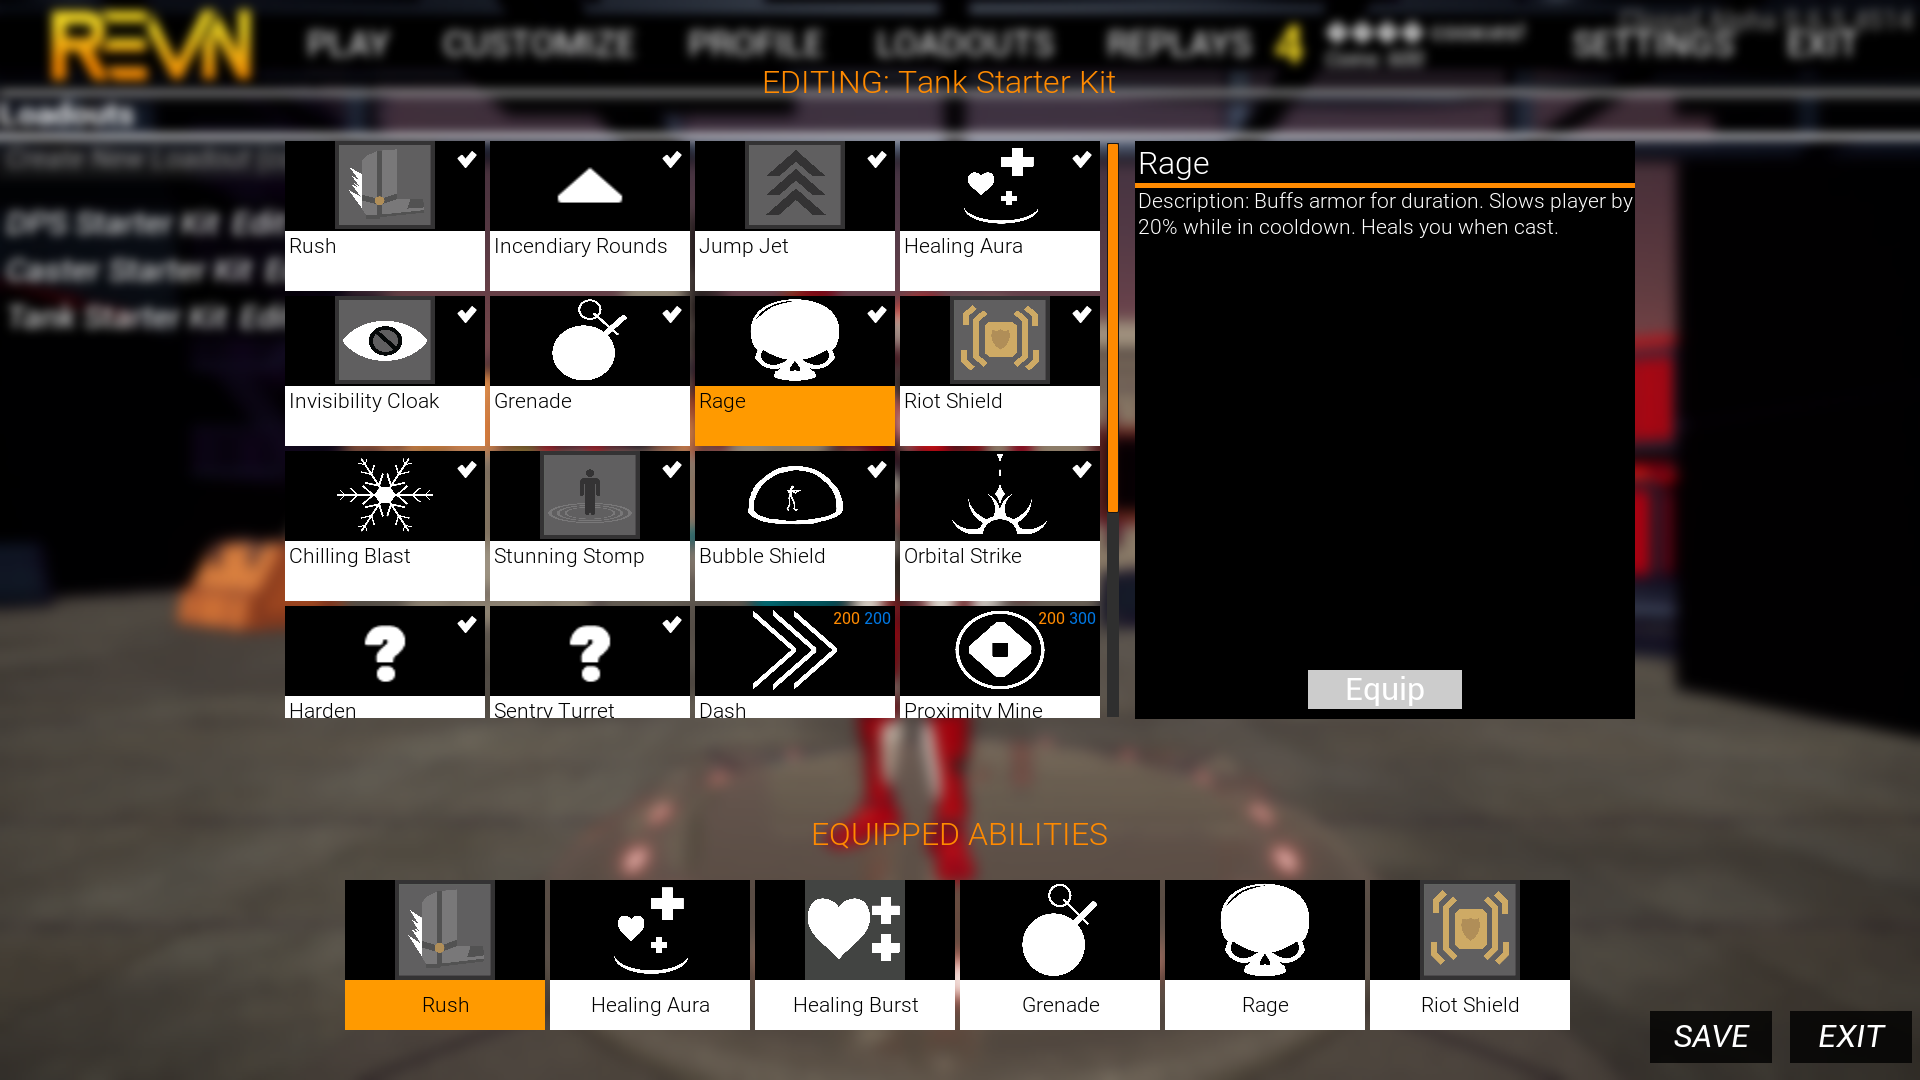 The ability store UI